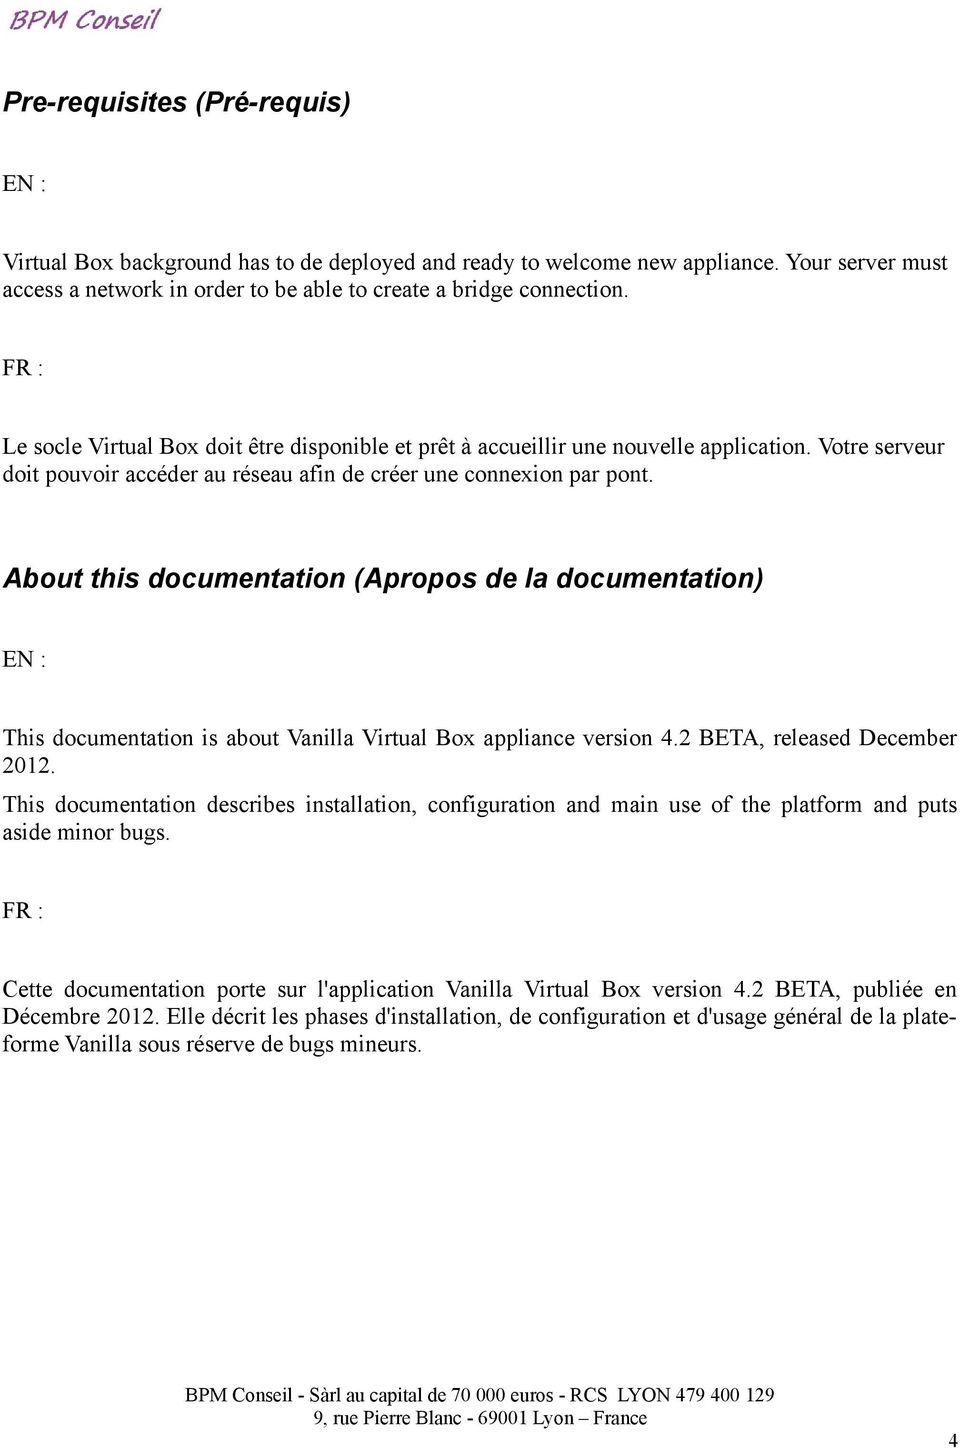 About this documentation (Apropos de la documentation) This documentation is about Vanilla Virtual Box appliance version 4.2 BETA, released December 2012.